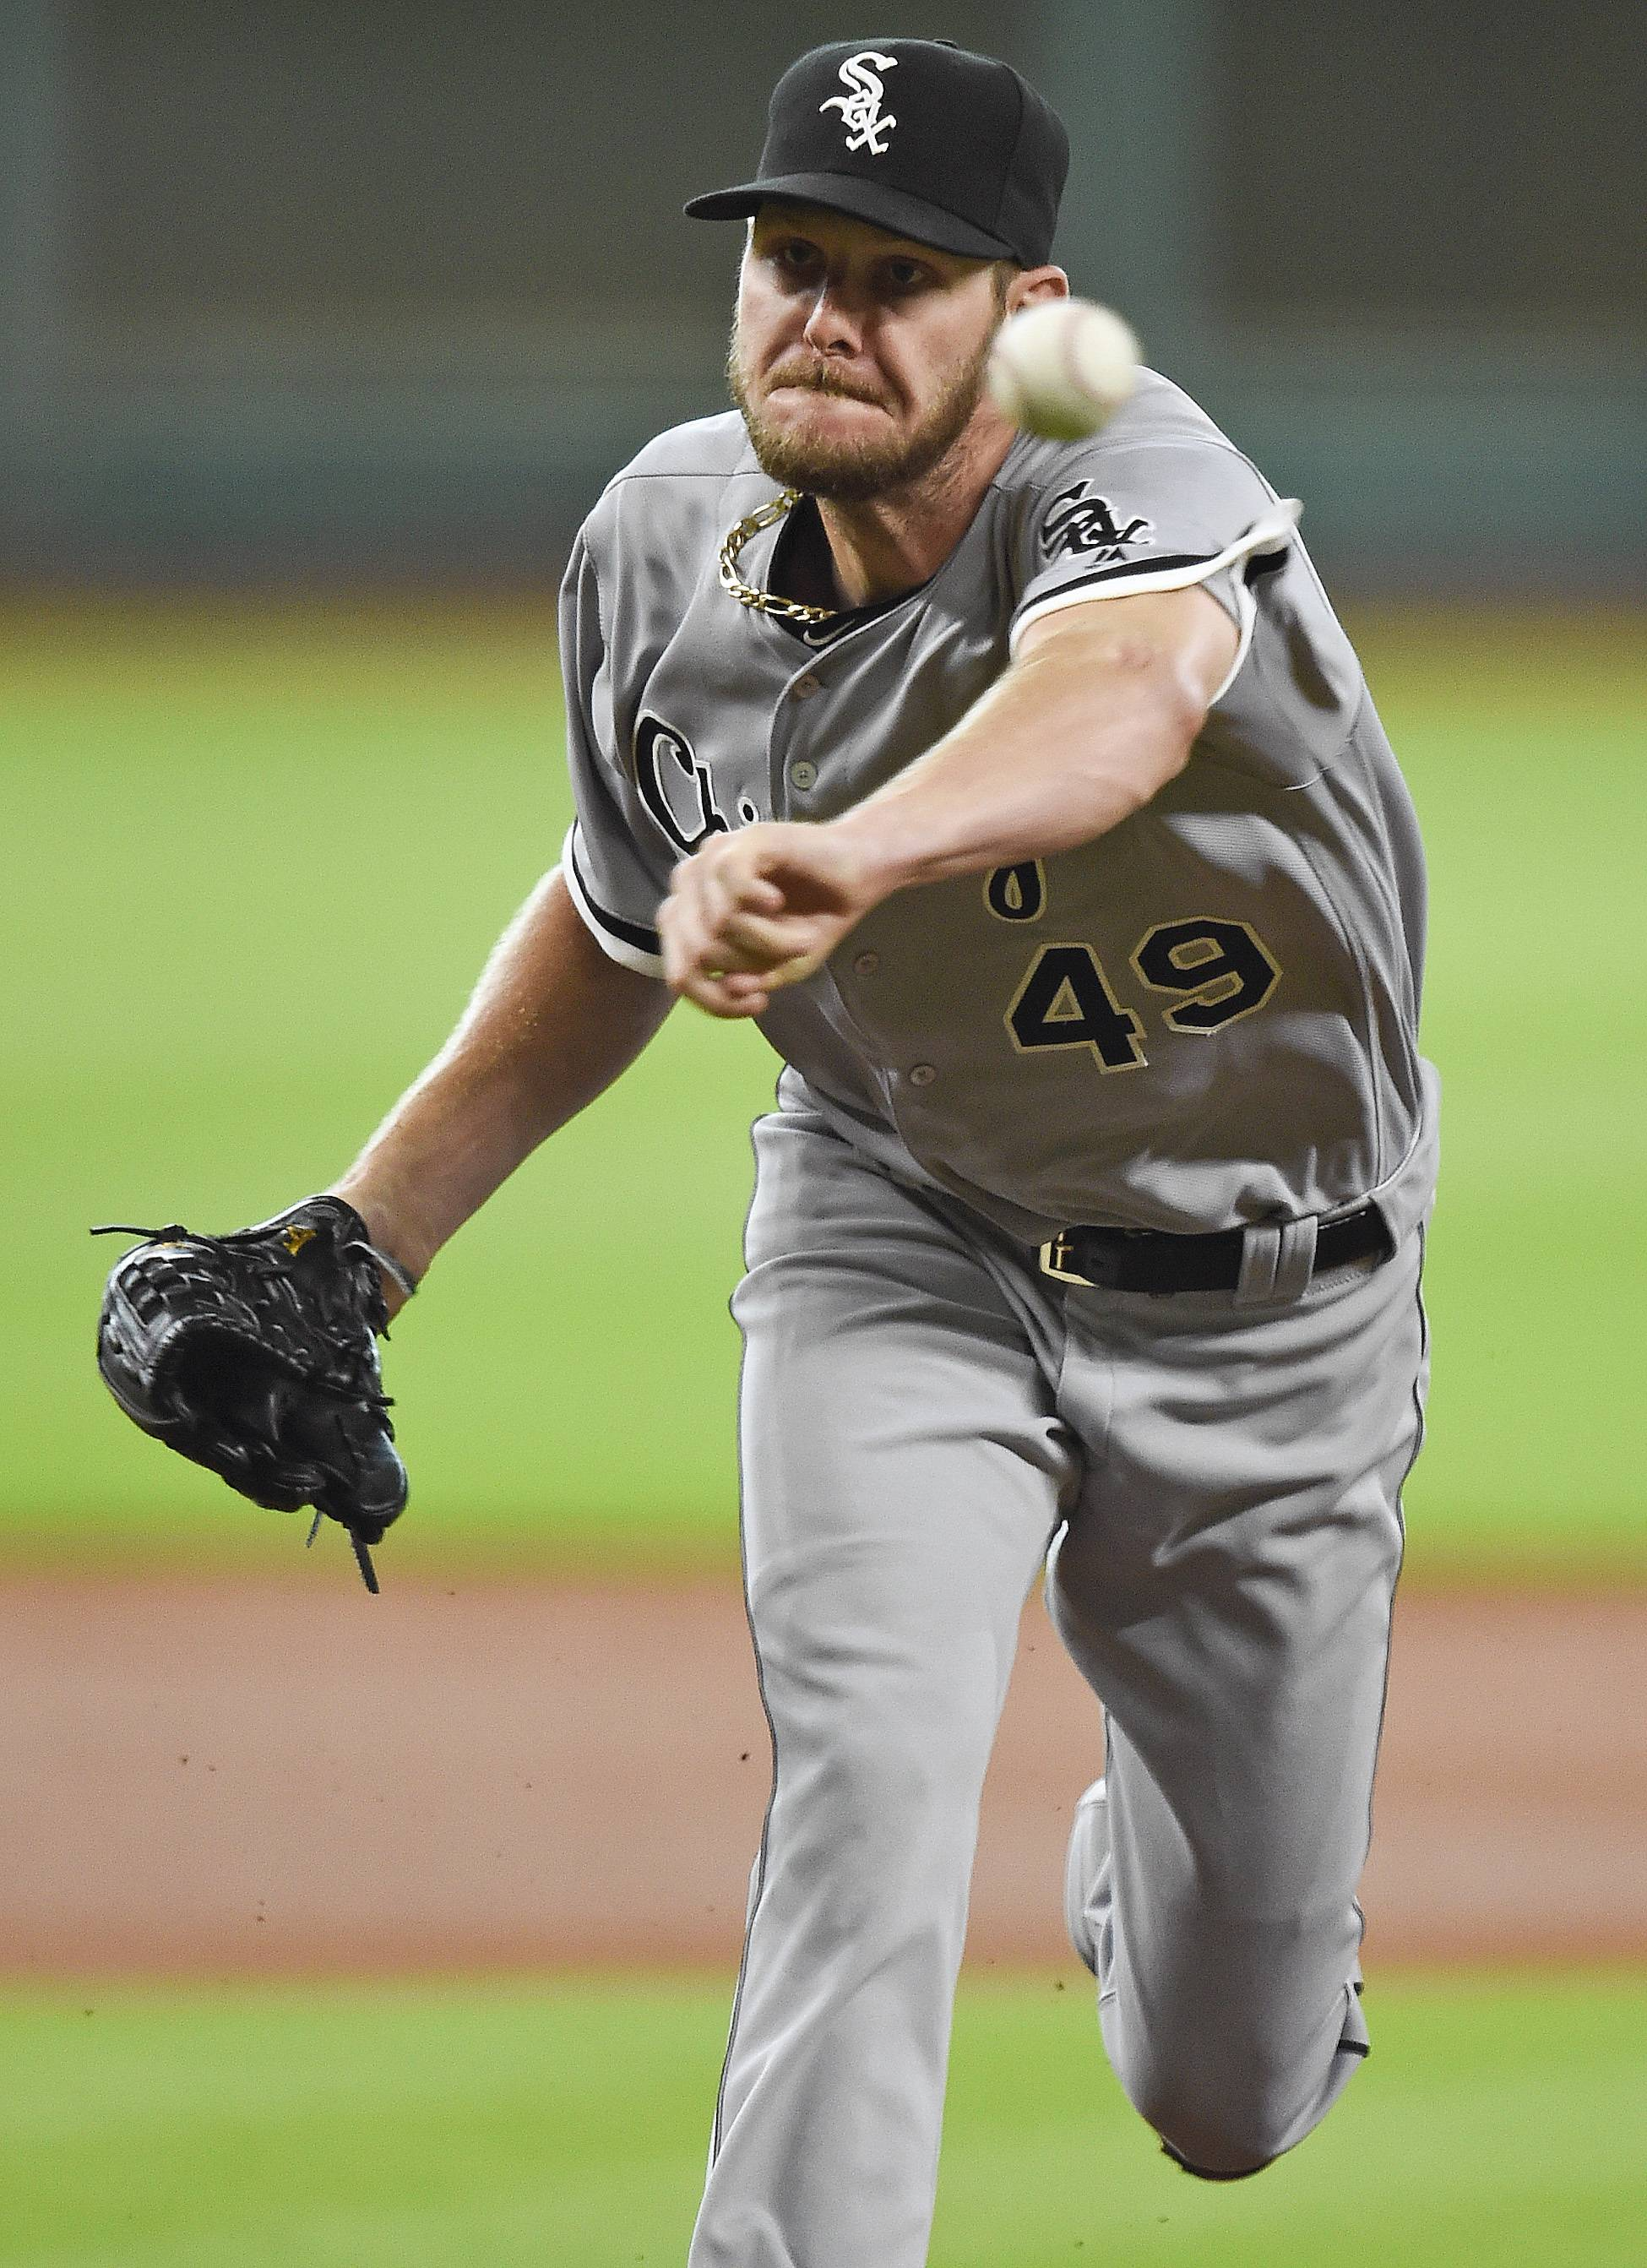 Chicago White Sox starting pitcher Chris Sale delivers in the first inning of a baseball game against the Houston Astros, Saturday, July 2, 2016, in Houston.